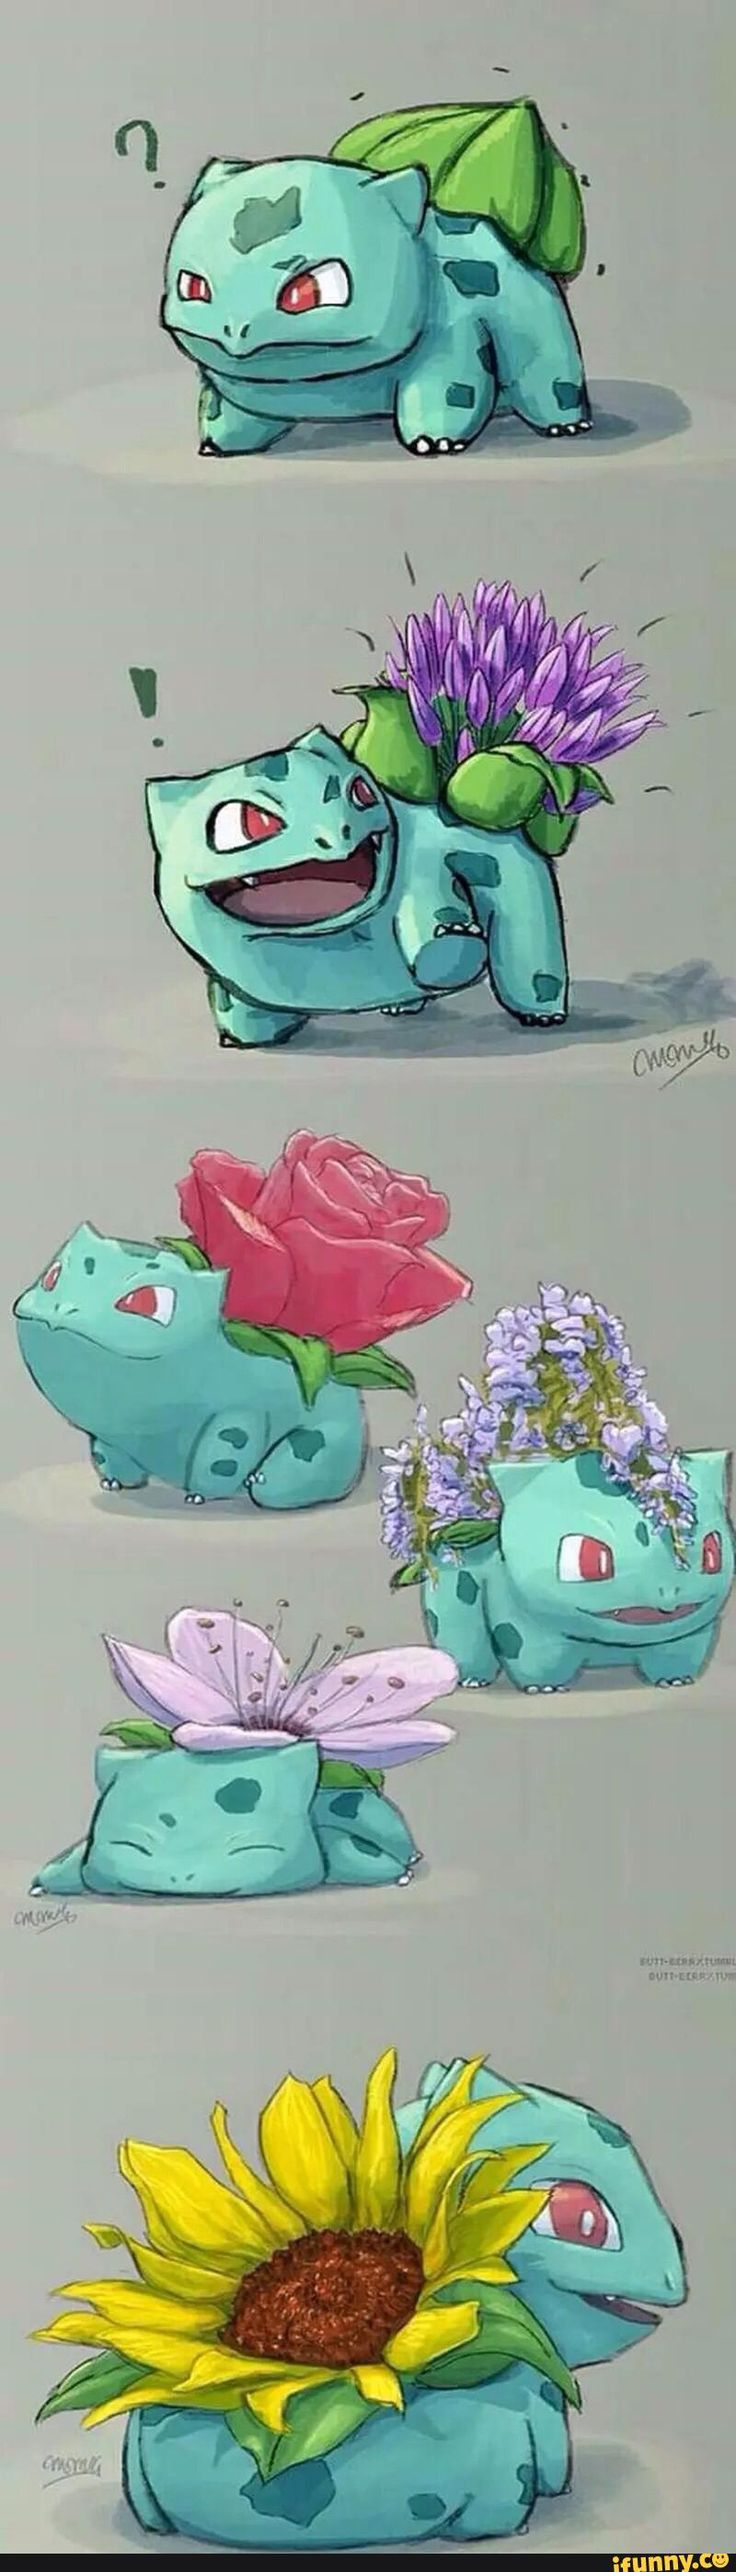 Imagine if we could change the flower on bulbasaur's back. I wonder how cherry blossoms would look